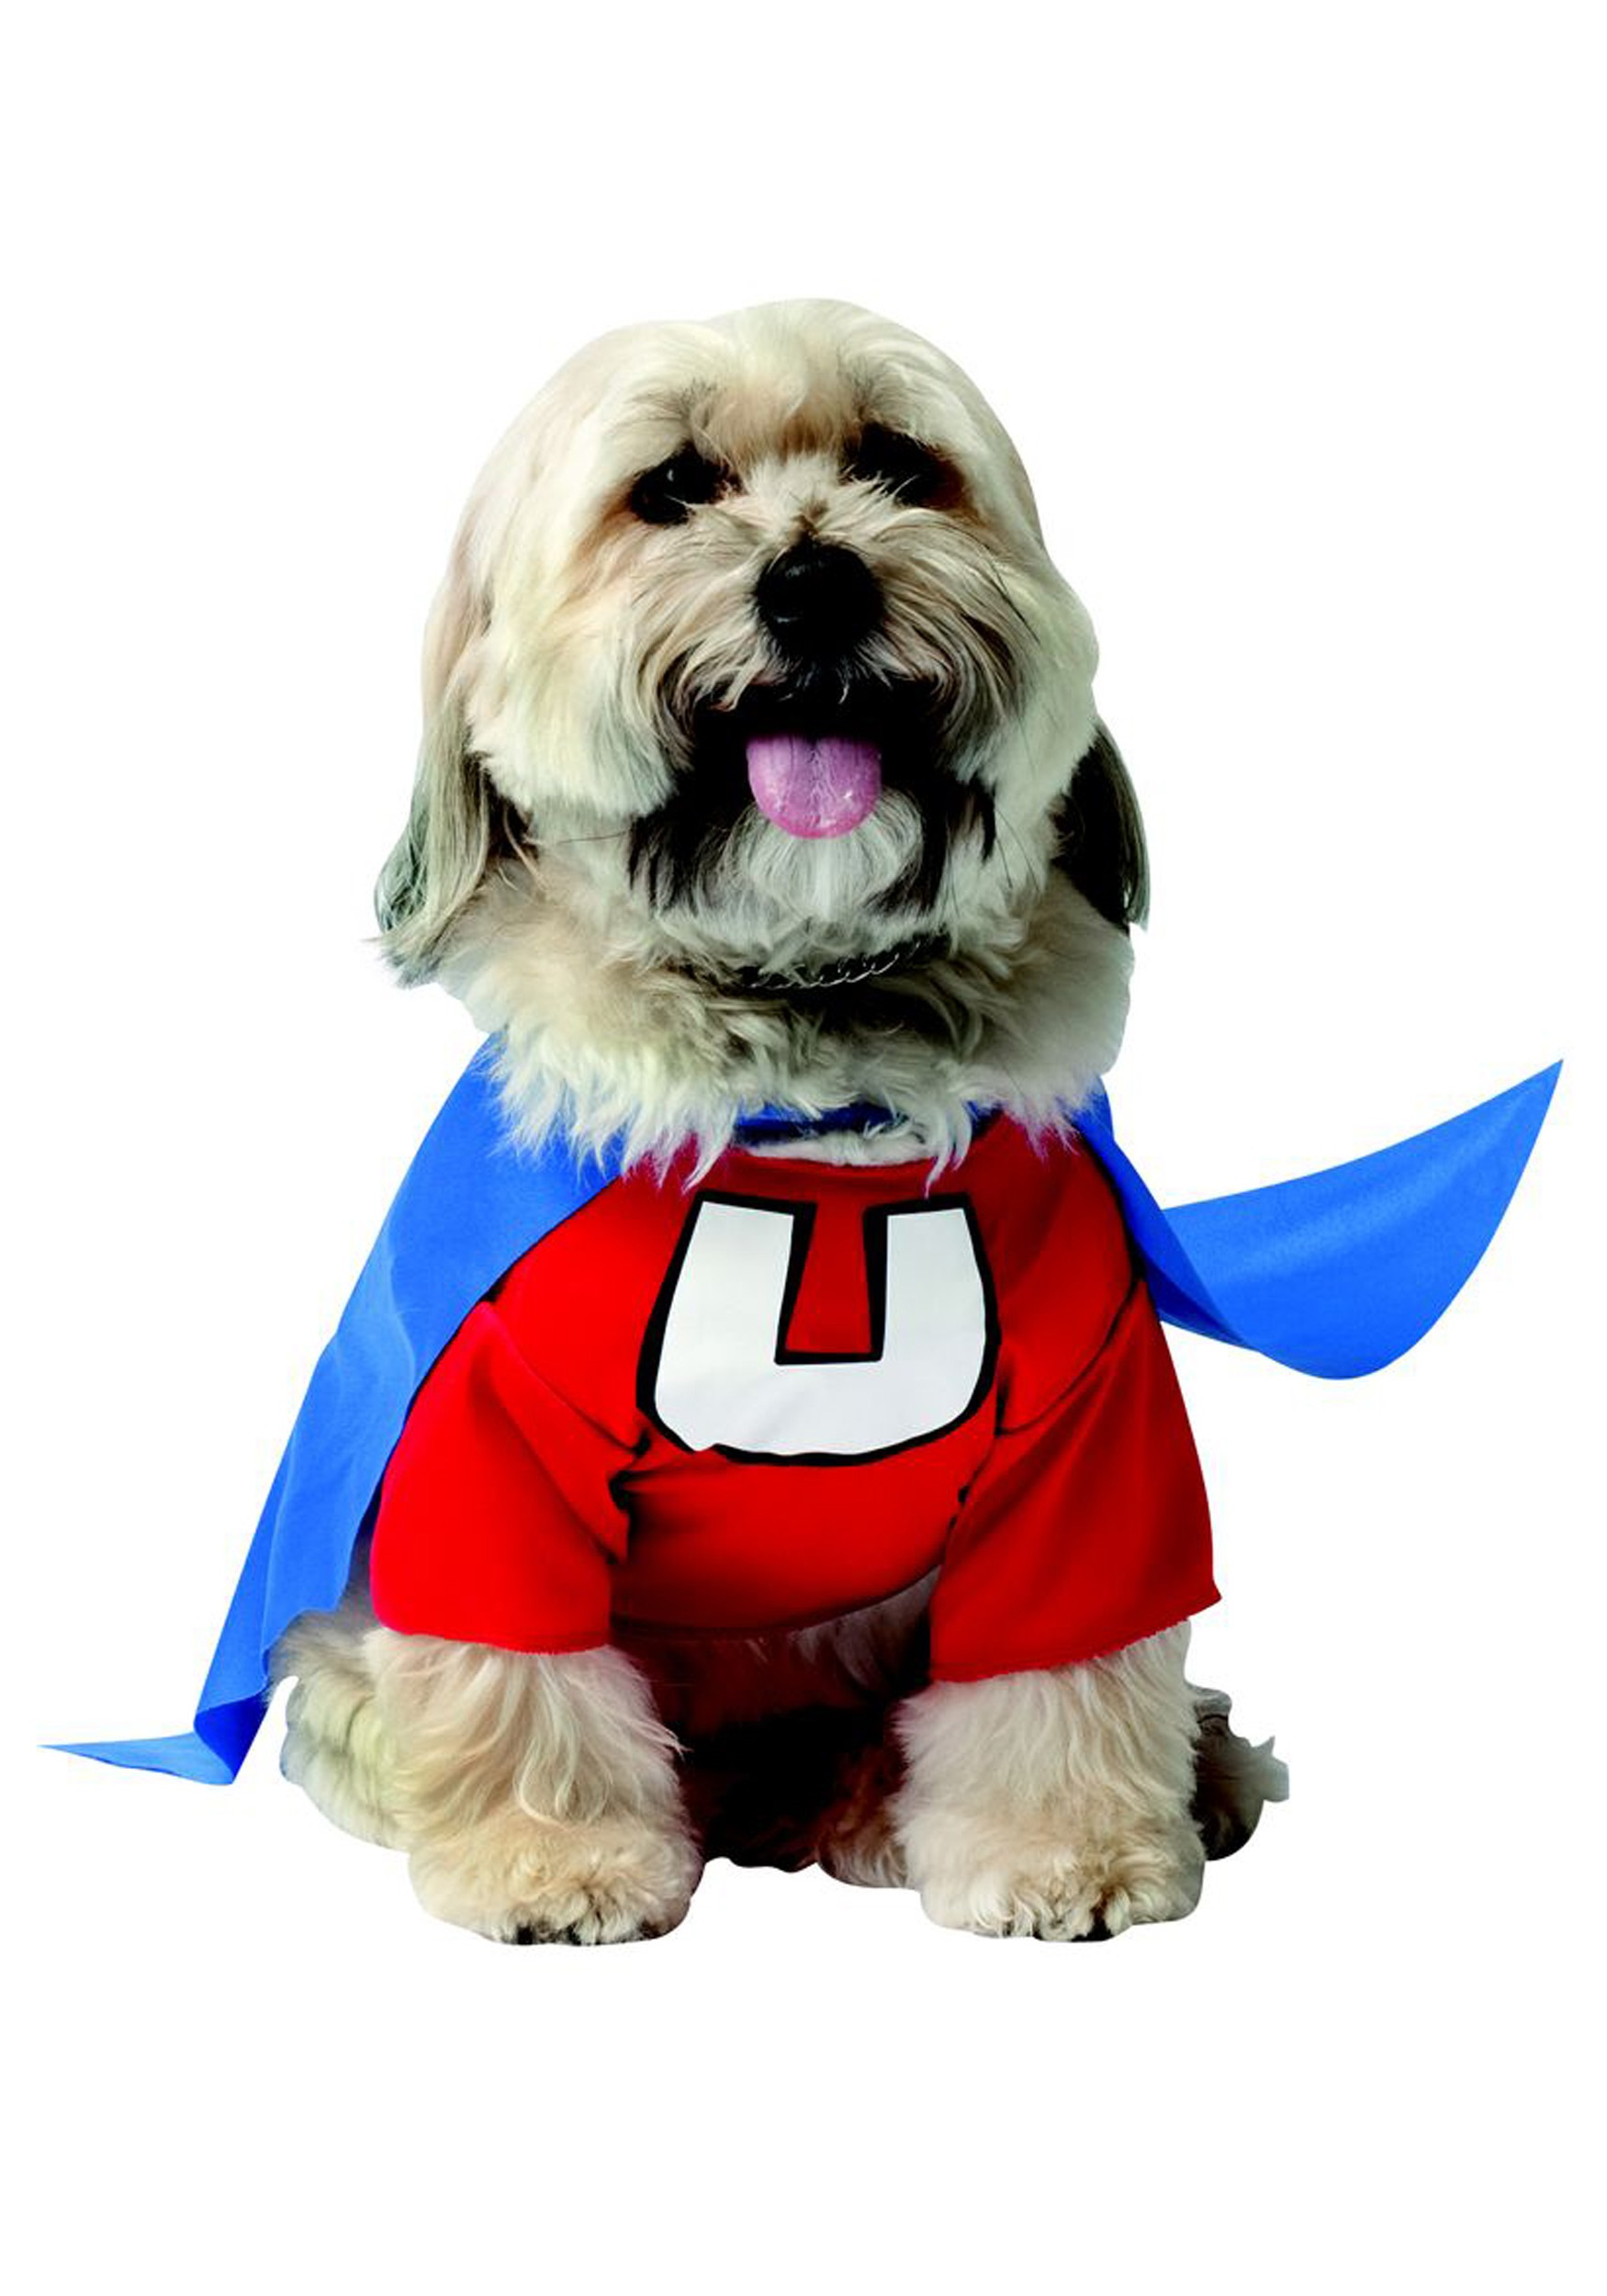 http://images.halloweencostumes.com/products/15026/1-1/underdog-dog-costume.jpg